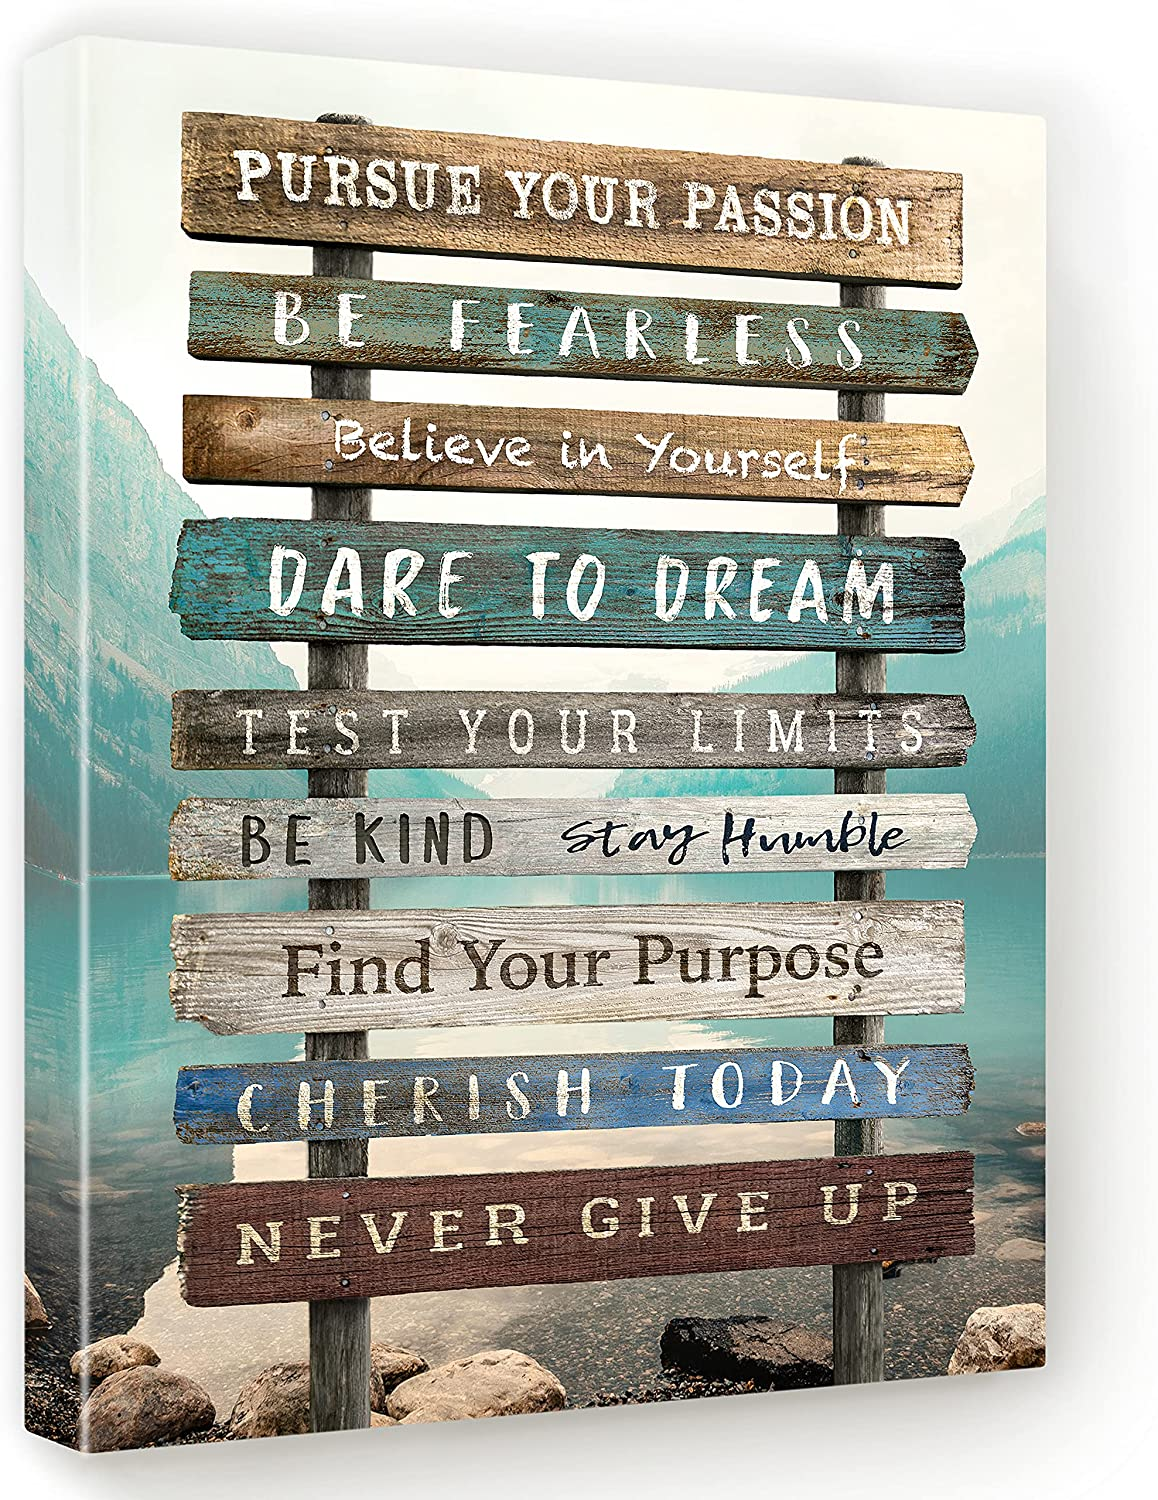 Inspirational Wall Art for Your Home Motivational Canvas decor for Office Bedroom Bathroom Living room Dorm Cubicle Positive Quotes 12x16